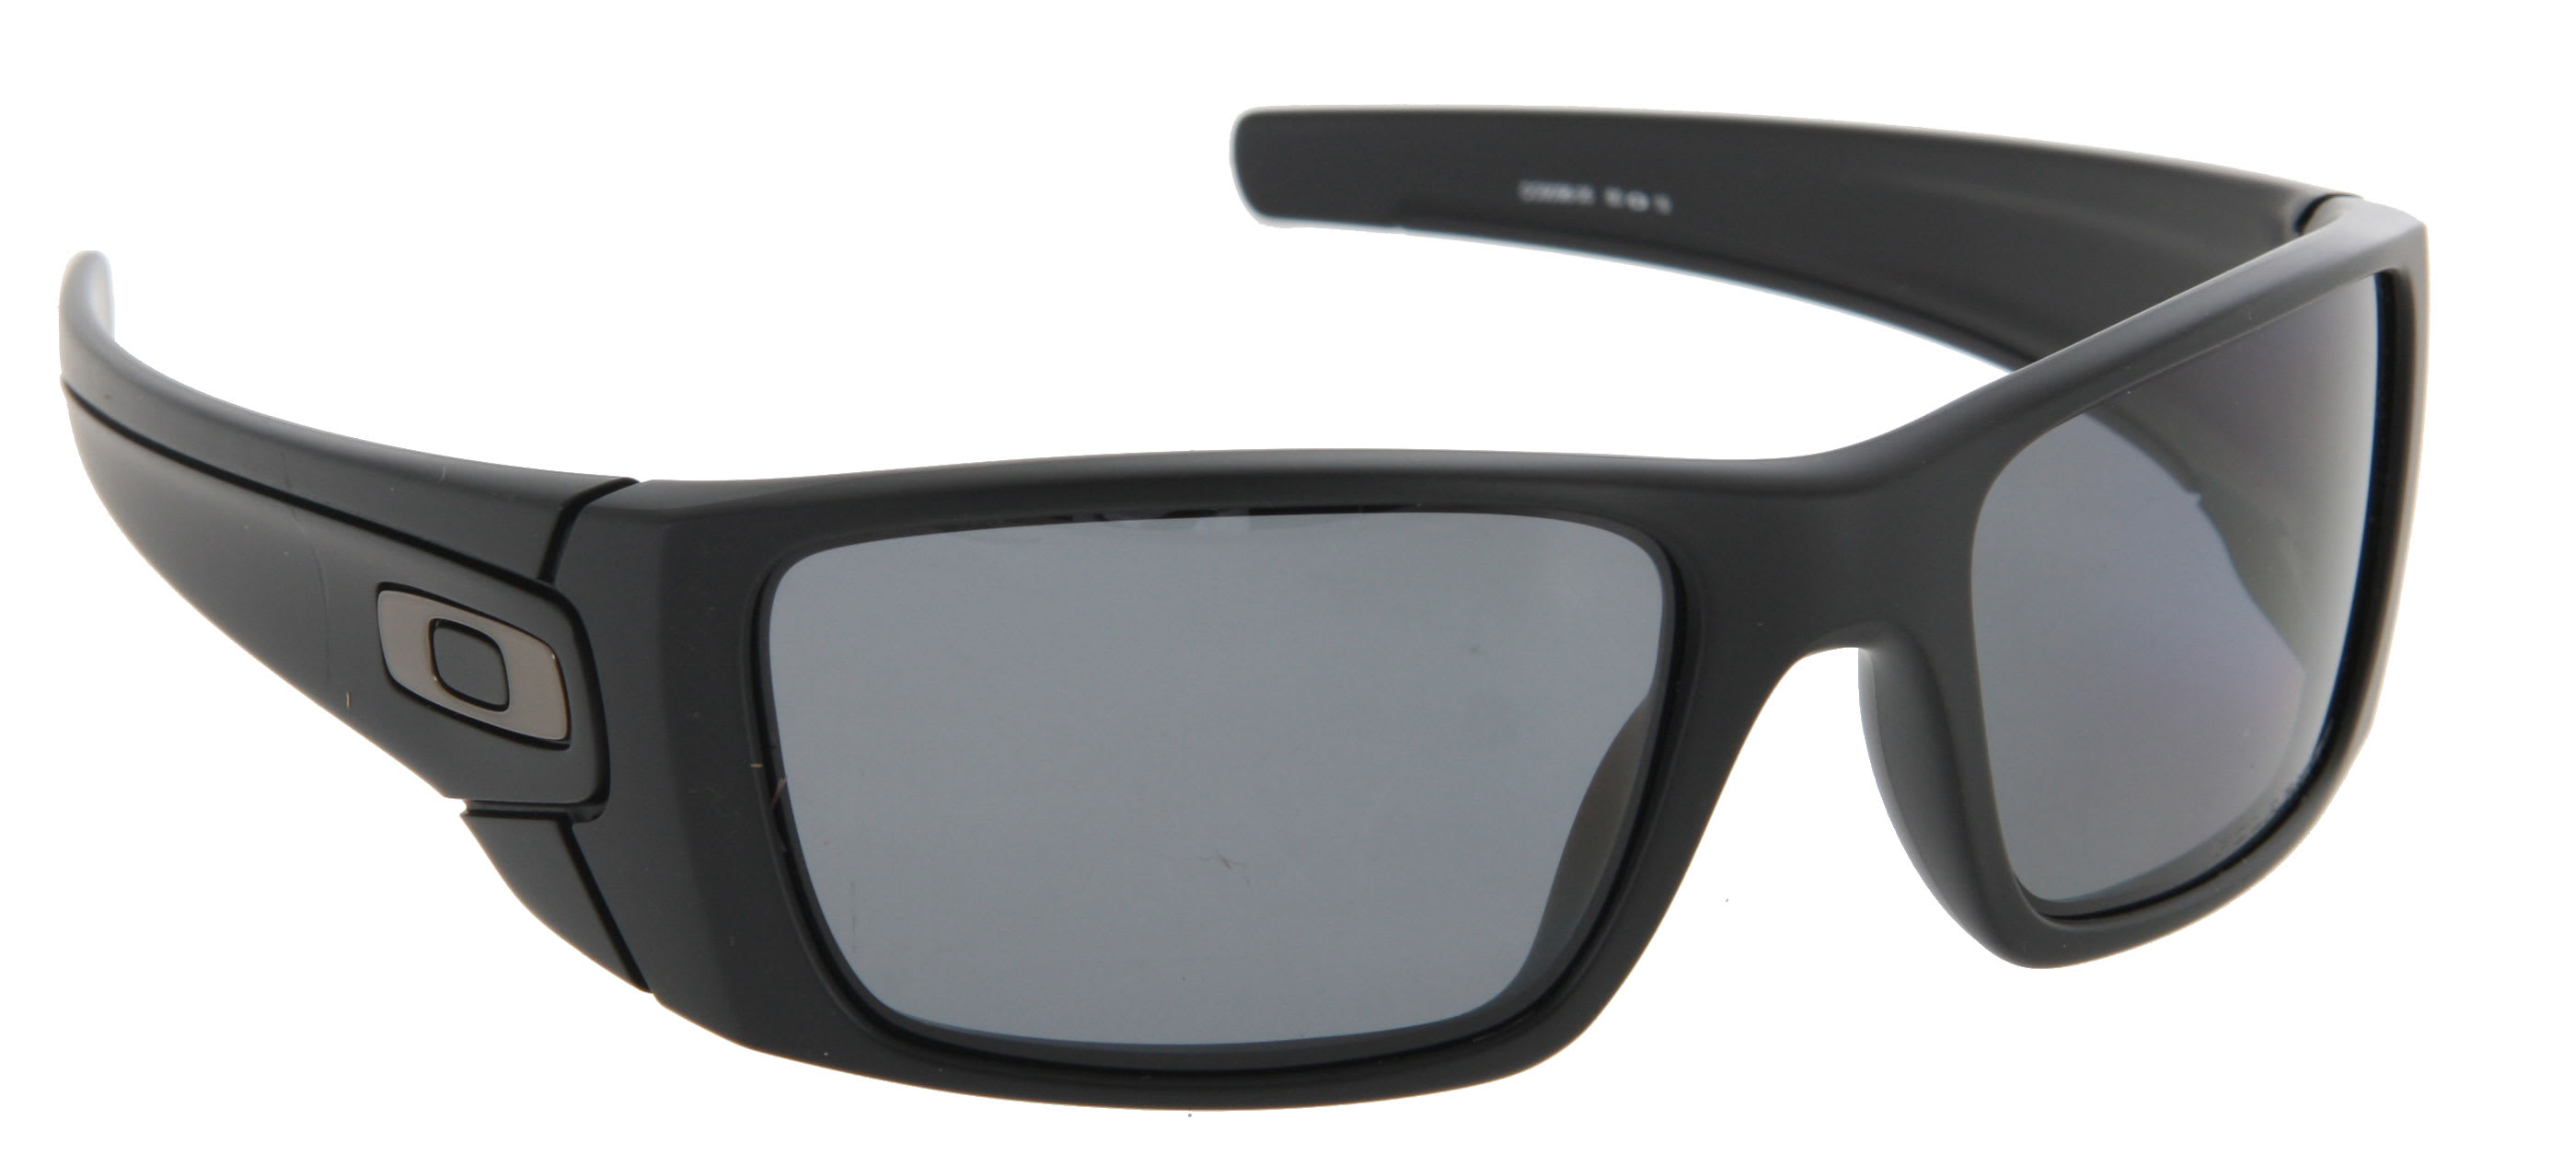 da208fd43ae4 Oakley Fuel Cell Sunglasses - thumbnail 1